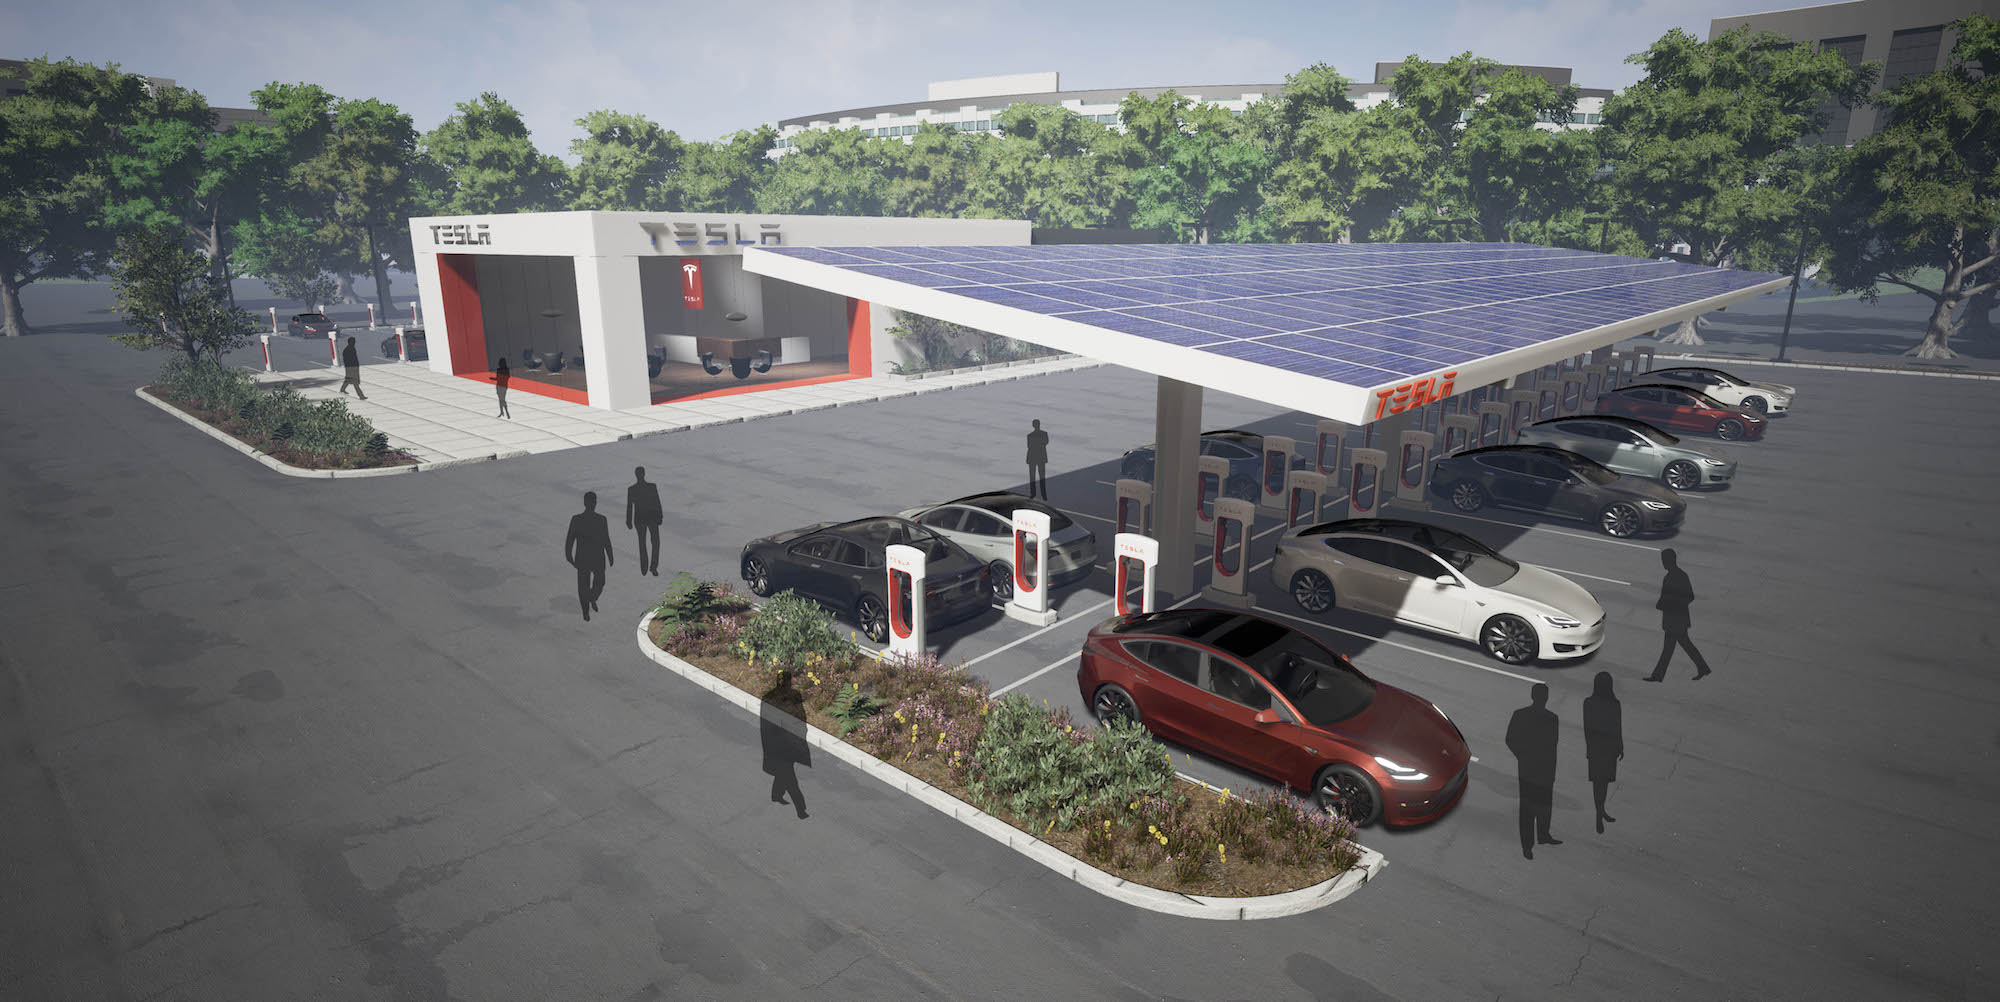 Tesla to double the number of Superchargers worldwide in 2017 ahead of Model 3 launch